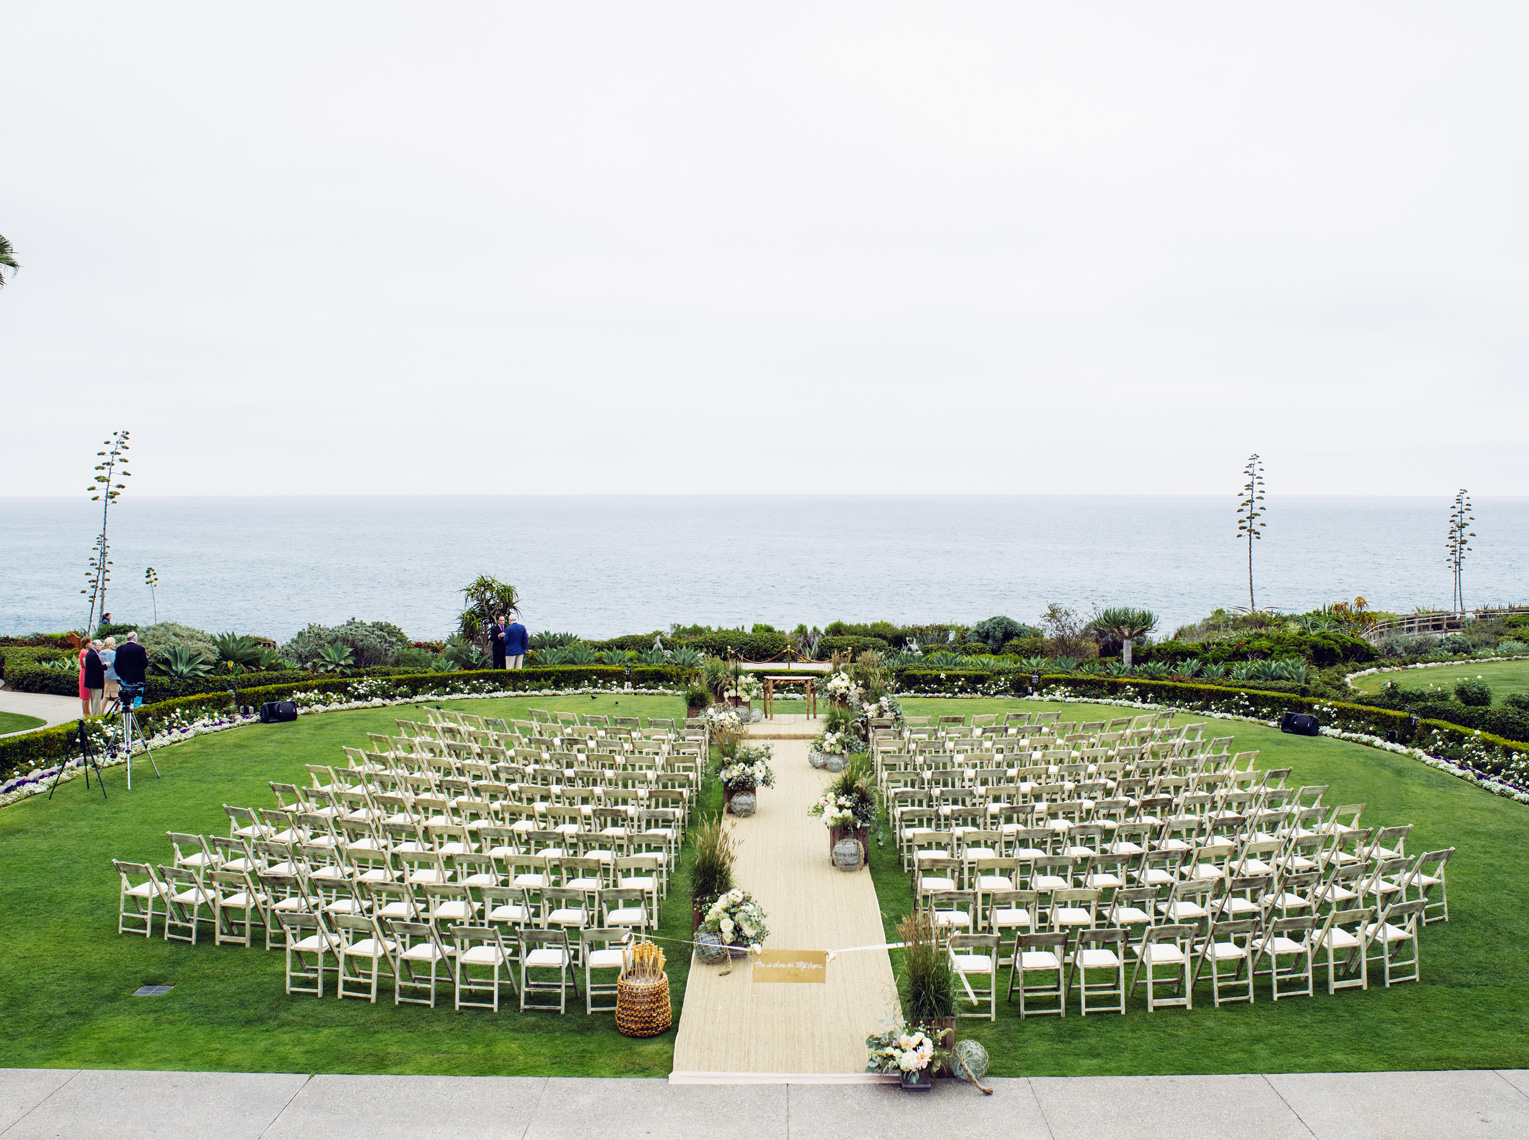 Wedding ceremony on Pacific Lawn at Montage Resort, Laguna Beach California